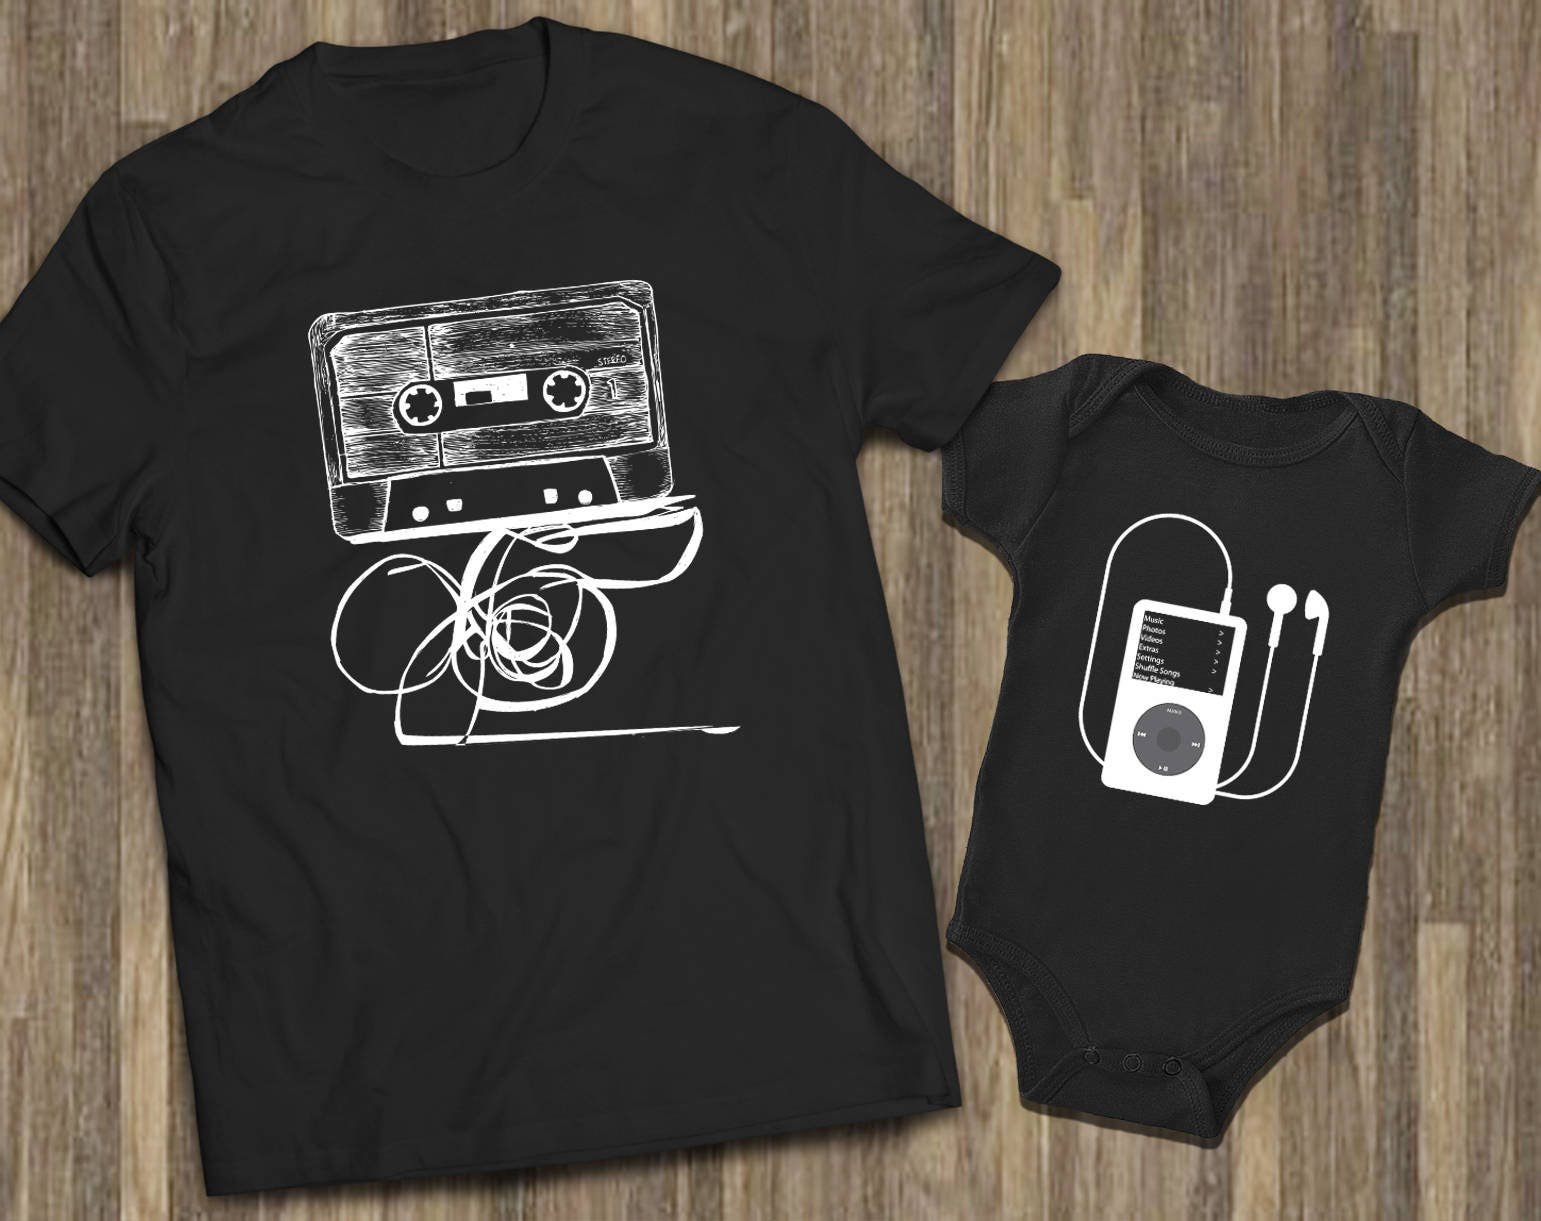 8ad79a4f Father Son Baby Dad Son Shirts Cassette Ipod Shirts | Etsy